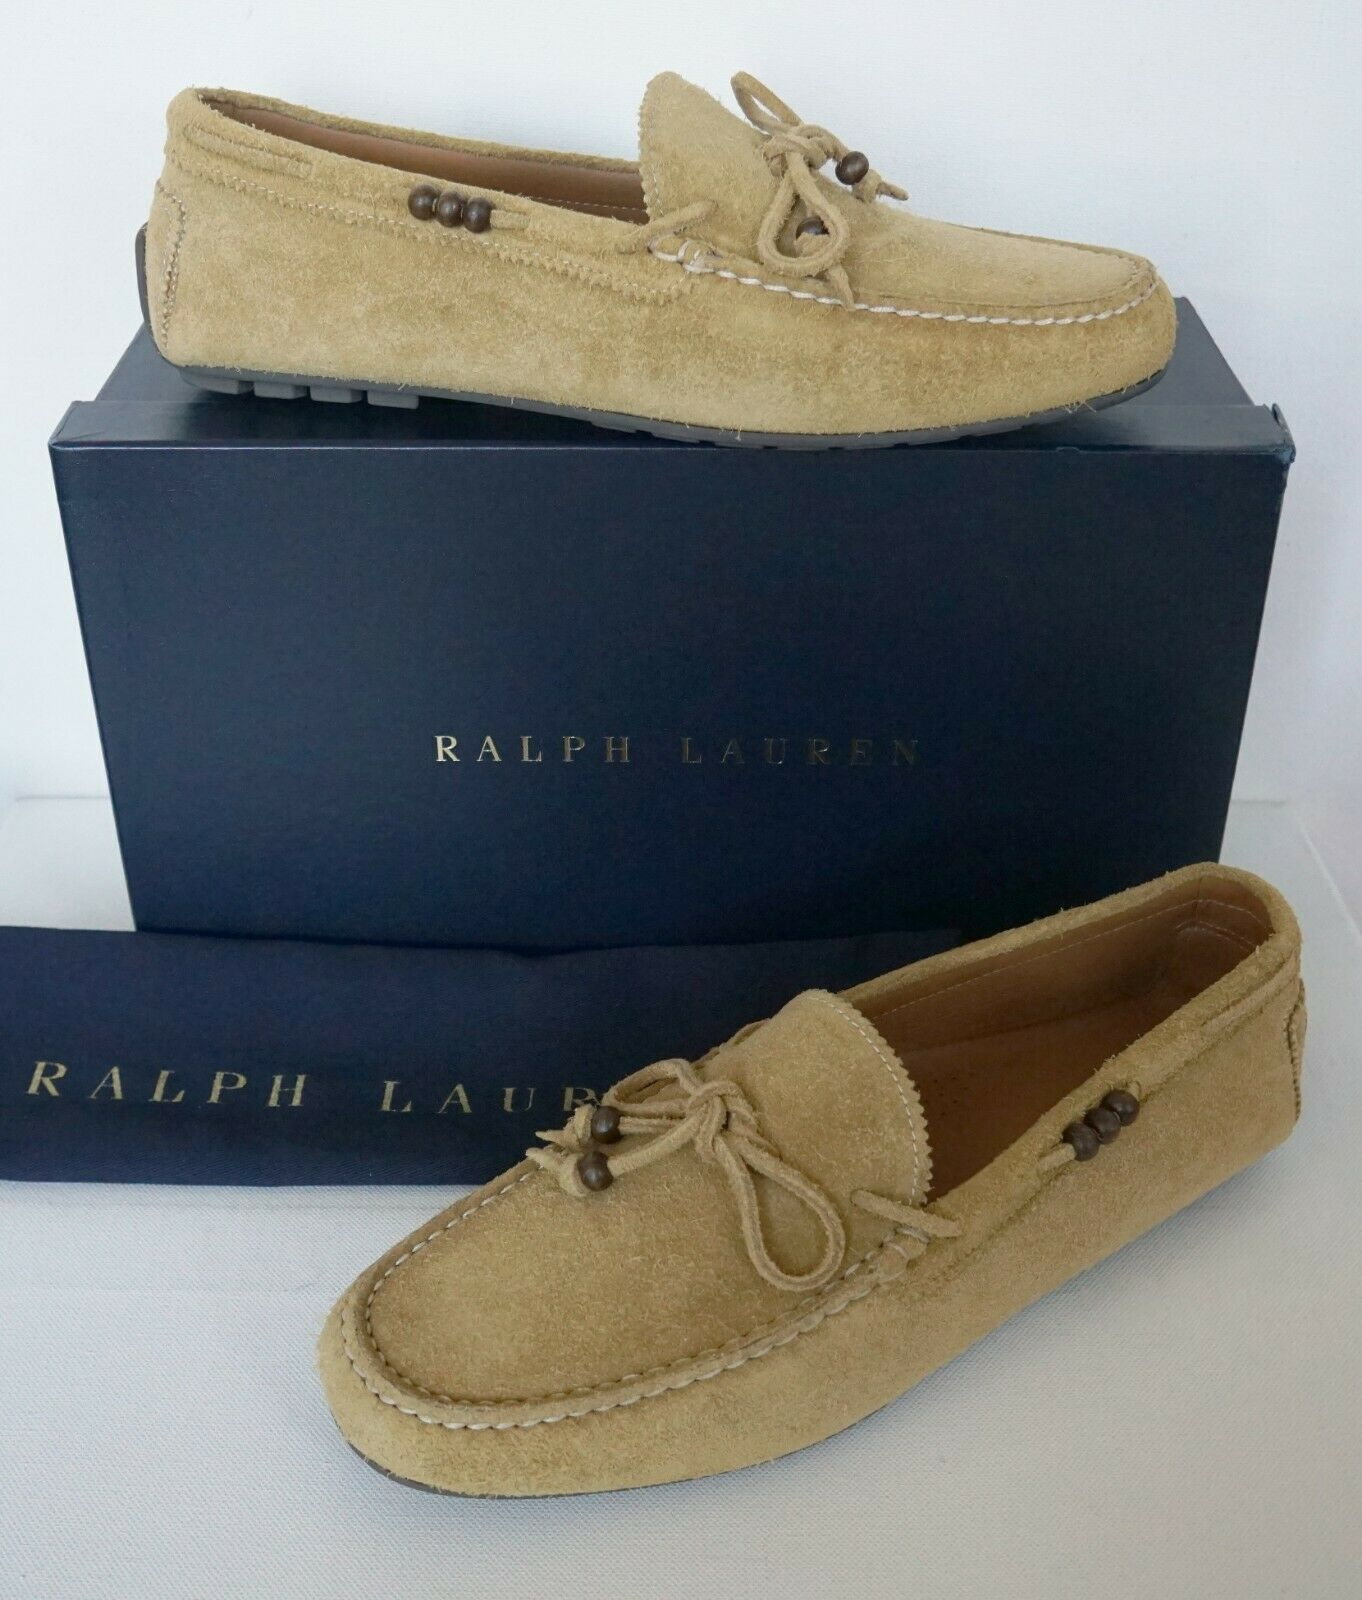 RALPH LAUREN PURPLE LABEL RANDEN Suede VENETIAN DRIVING Loafer shoes US-11D EU44